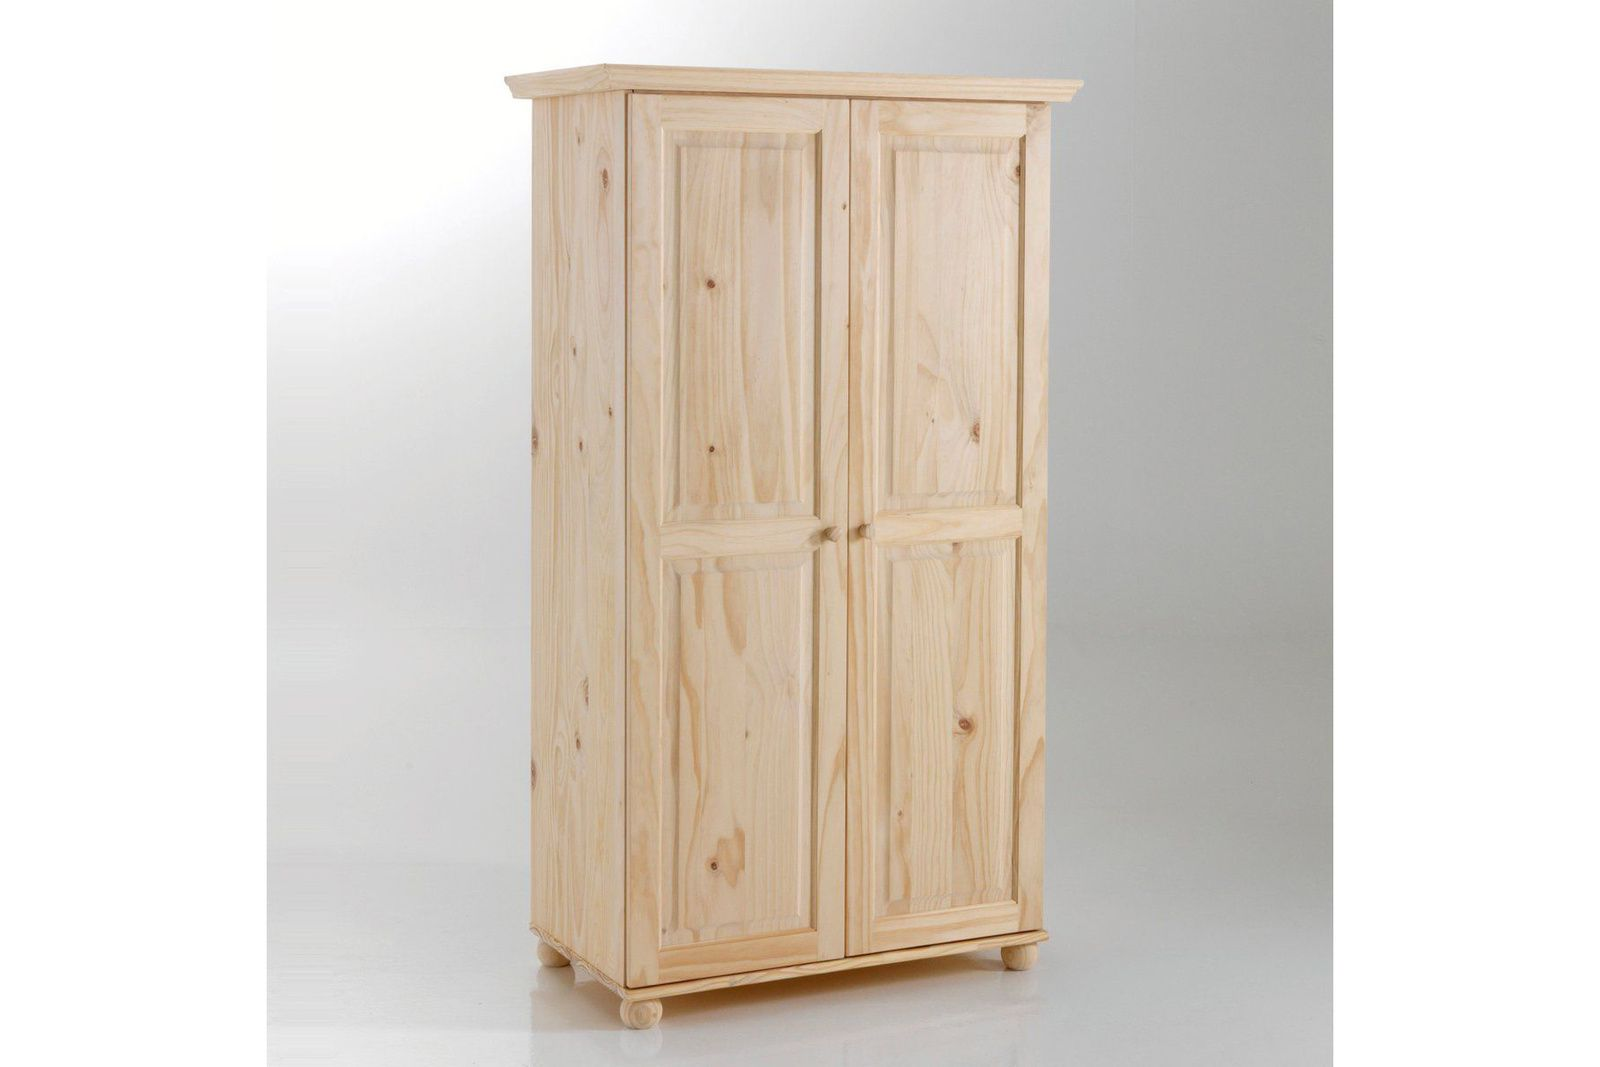 armoire penderie en bois rn82 jornalagora. Black Bedroom Furniture Sets. Home Design Ideas